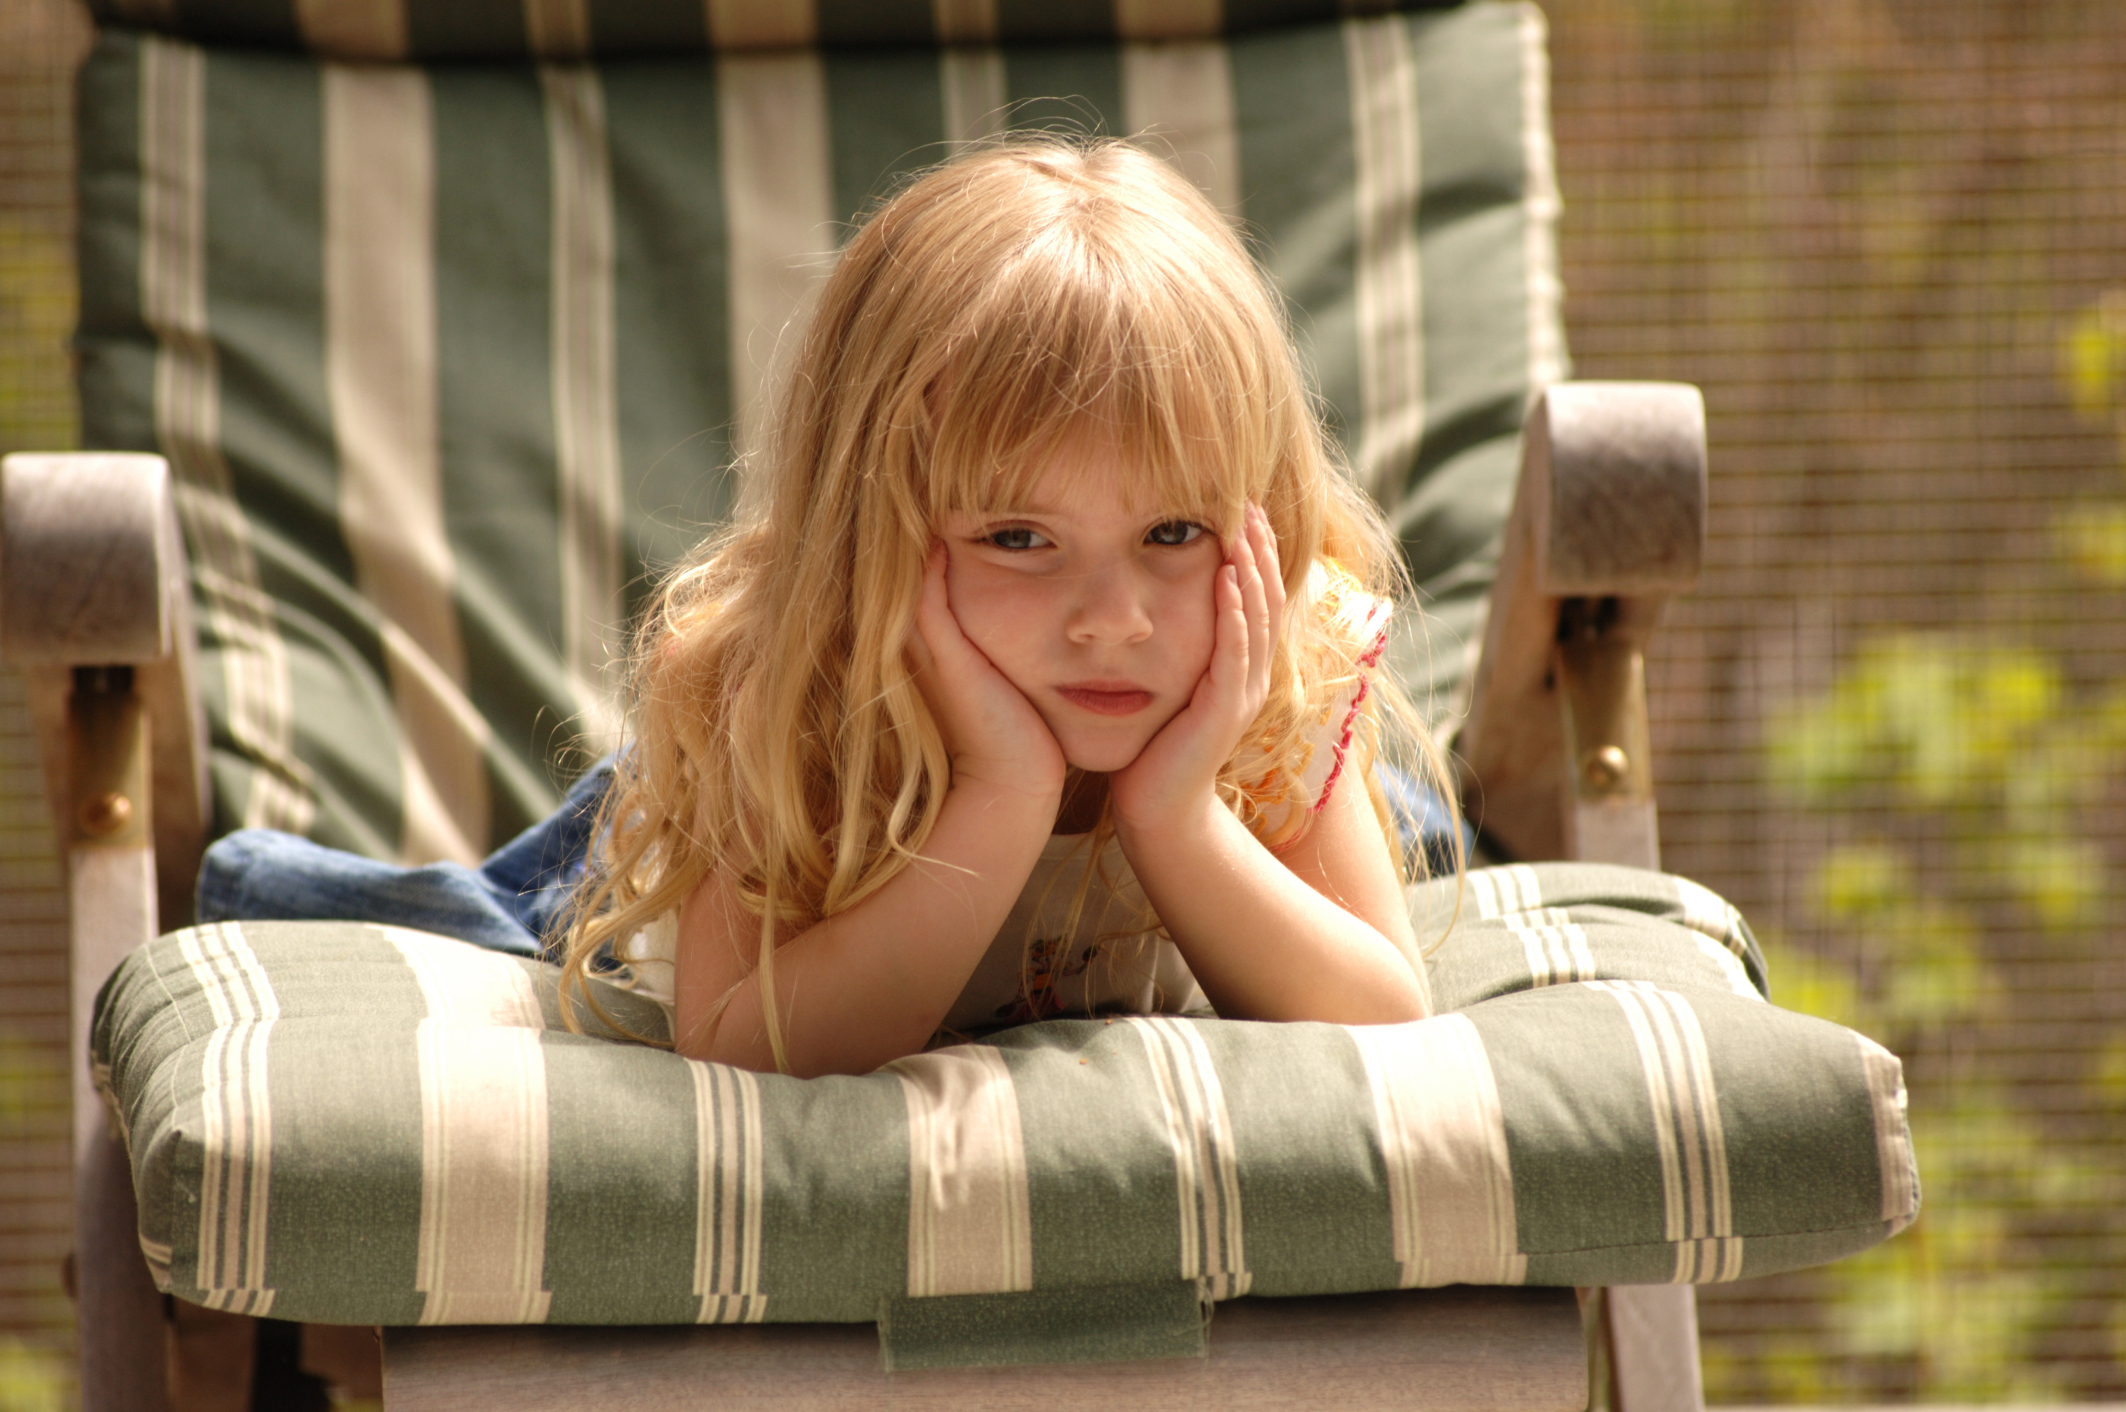 Blond girl on chair with her hands to her face